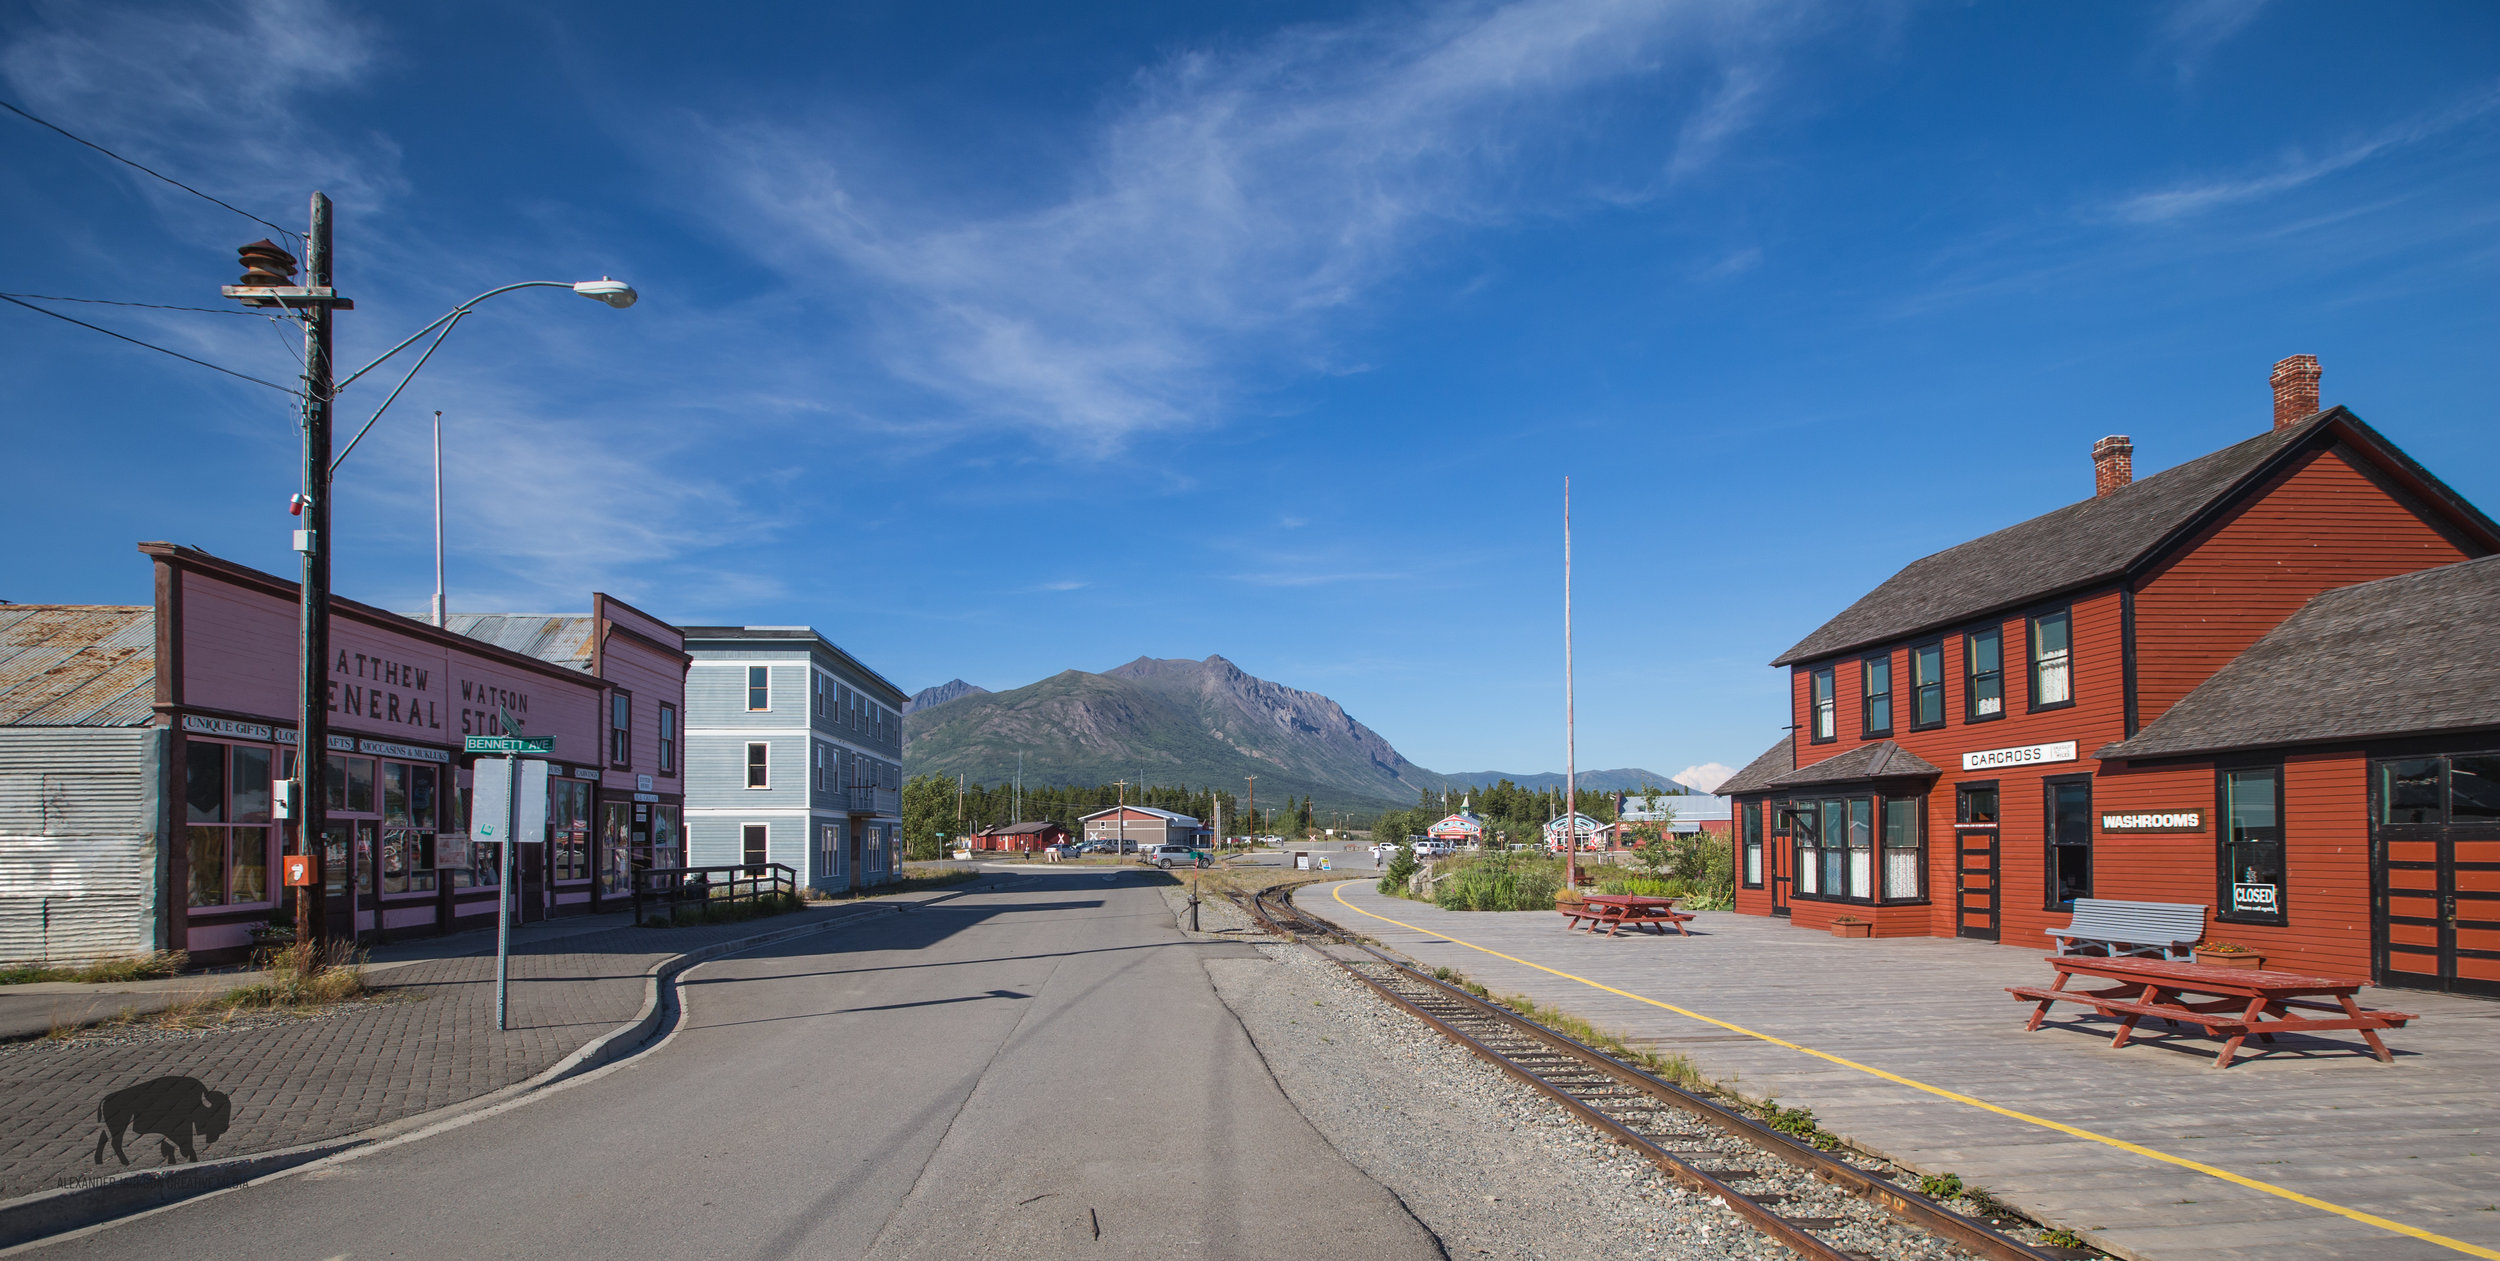 The town of Carcross.